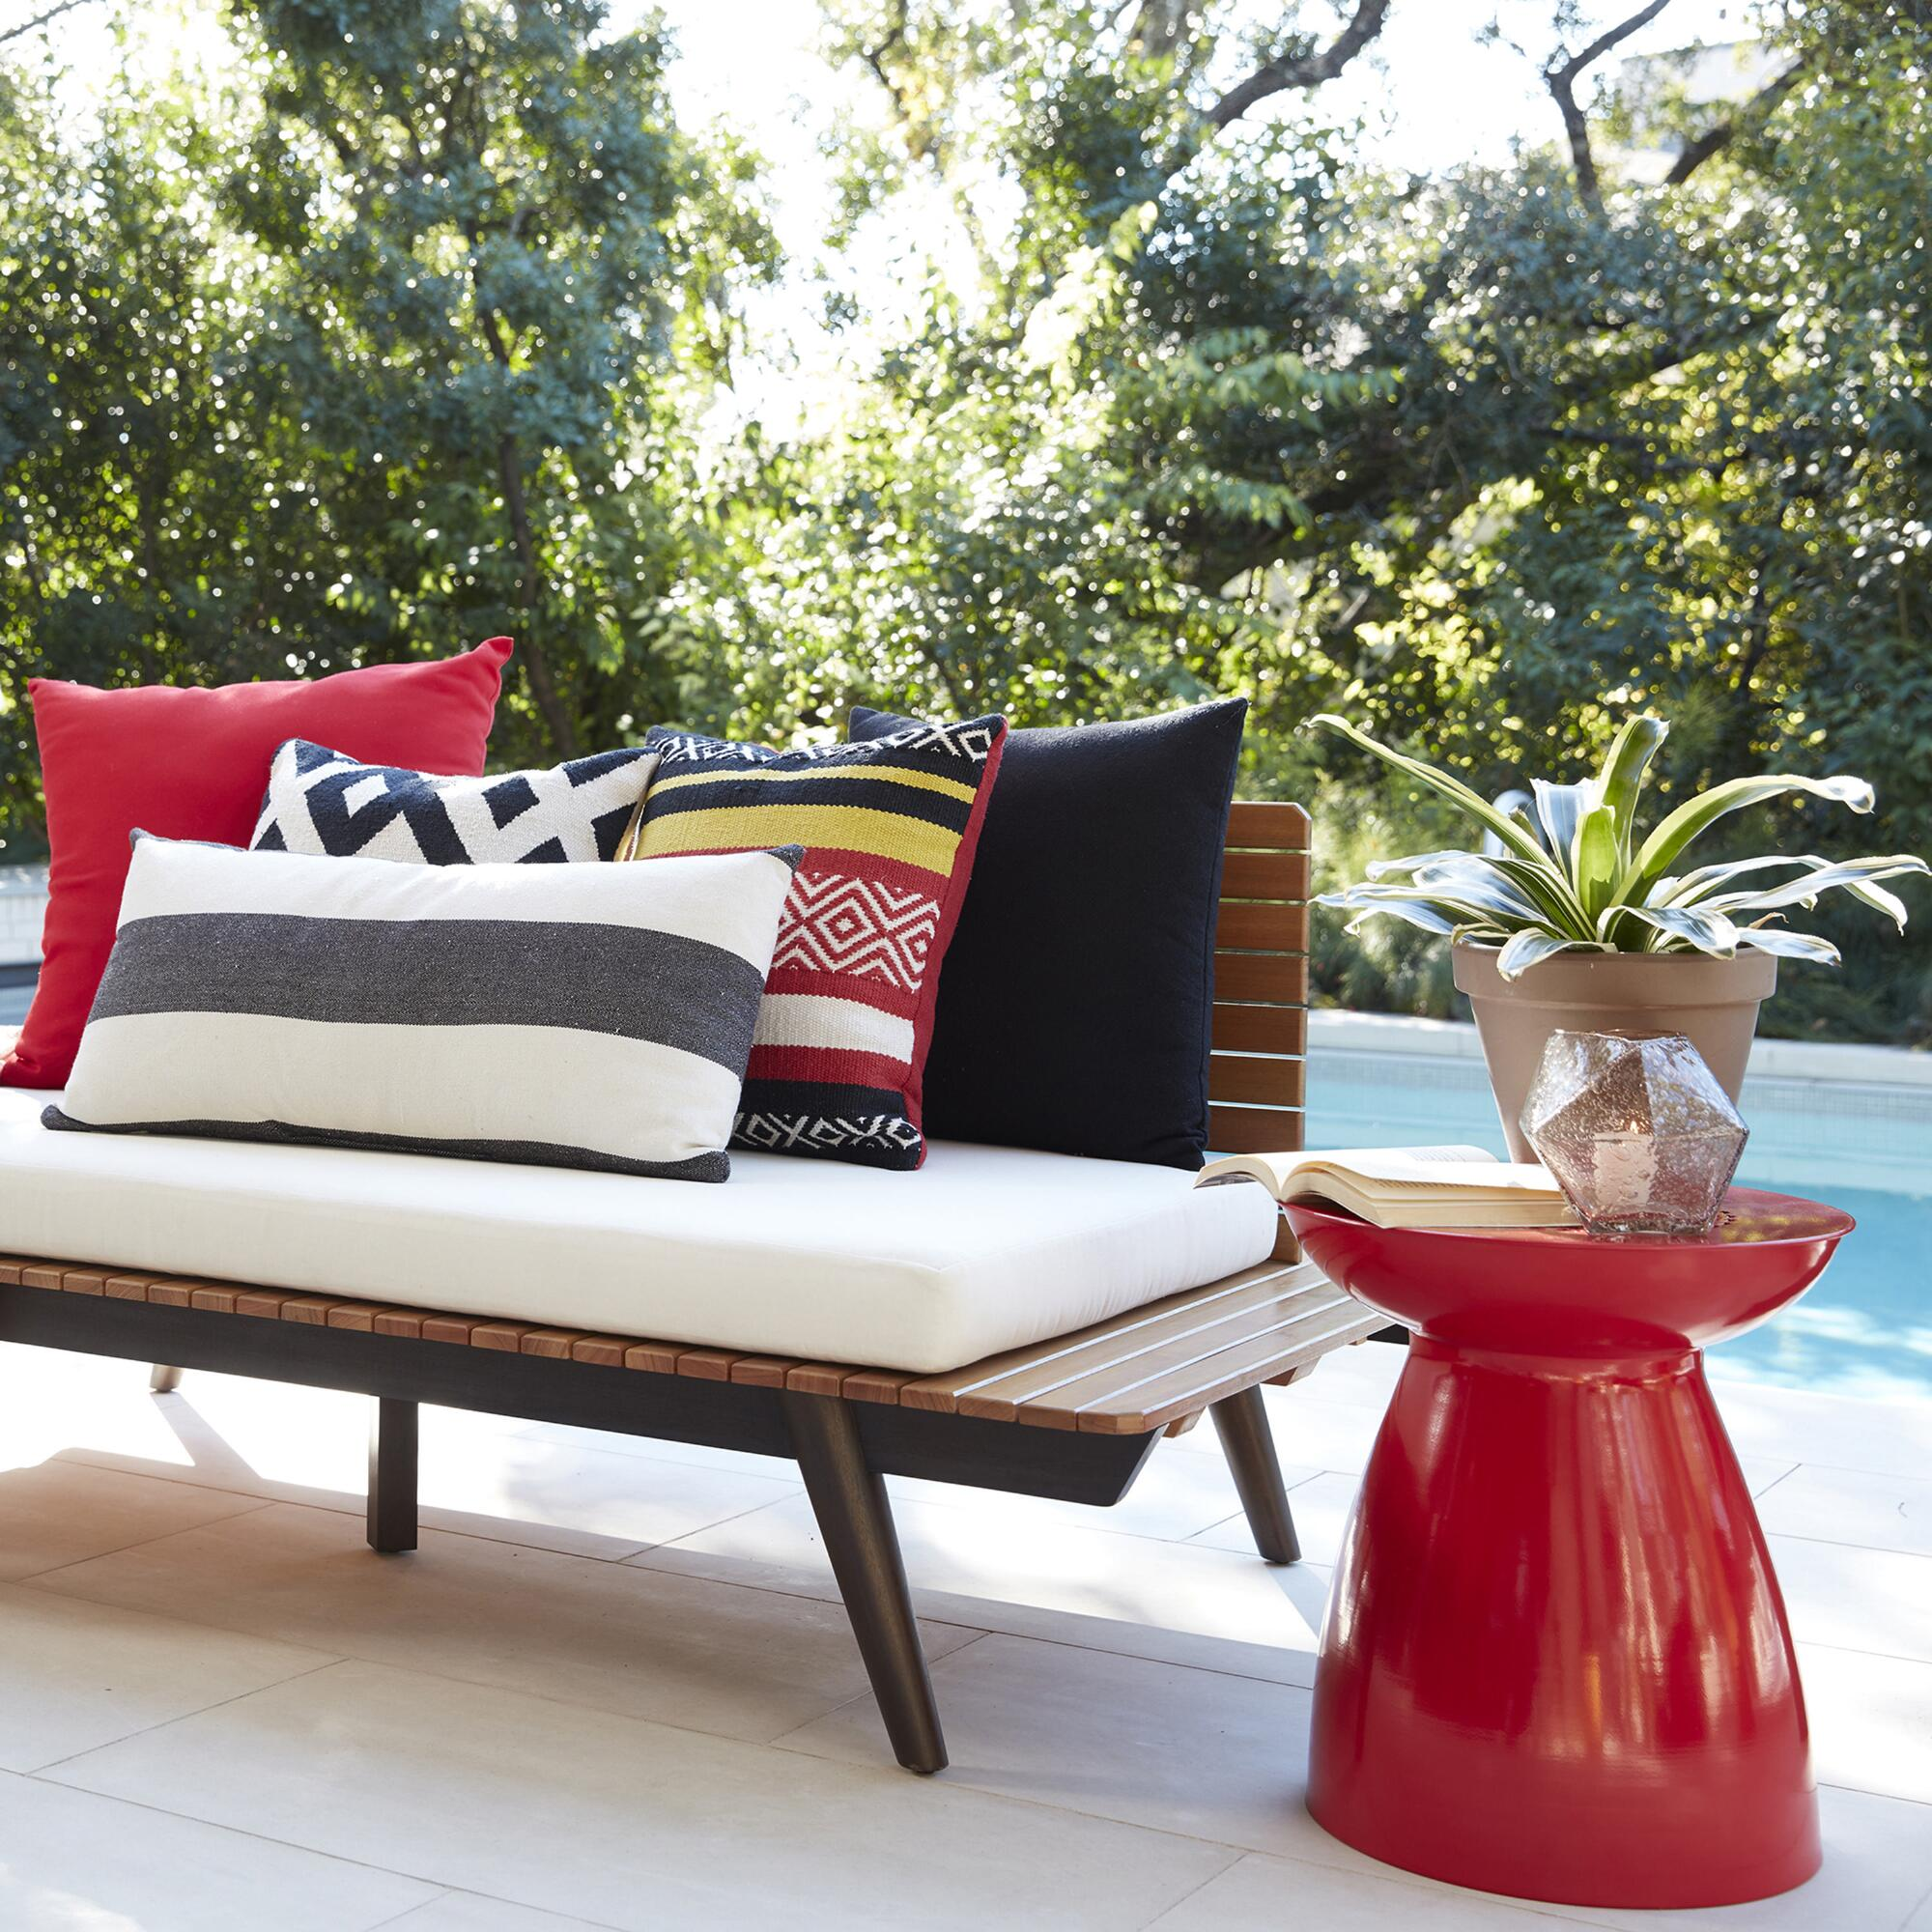 acrylic side chair with cushion red leather best outdoor furniture: 15 picks for any budget - curbed